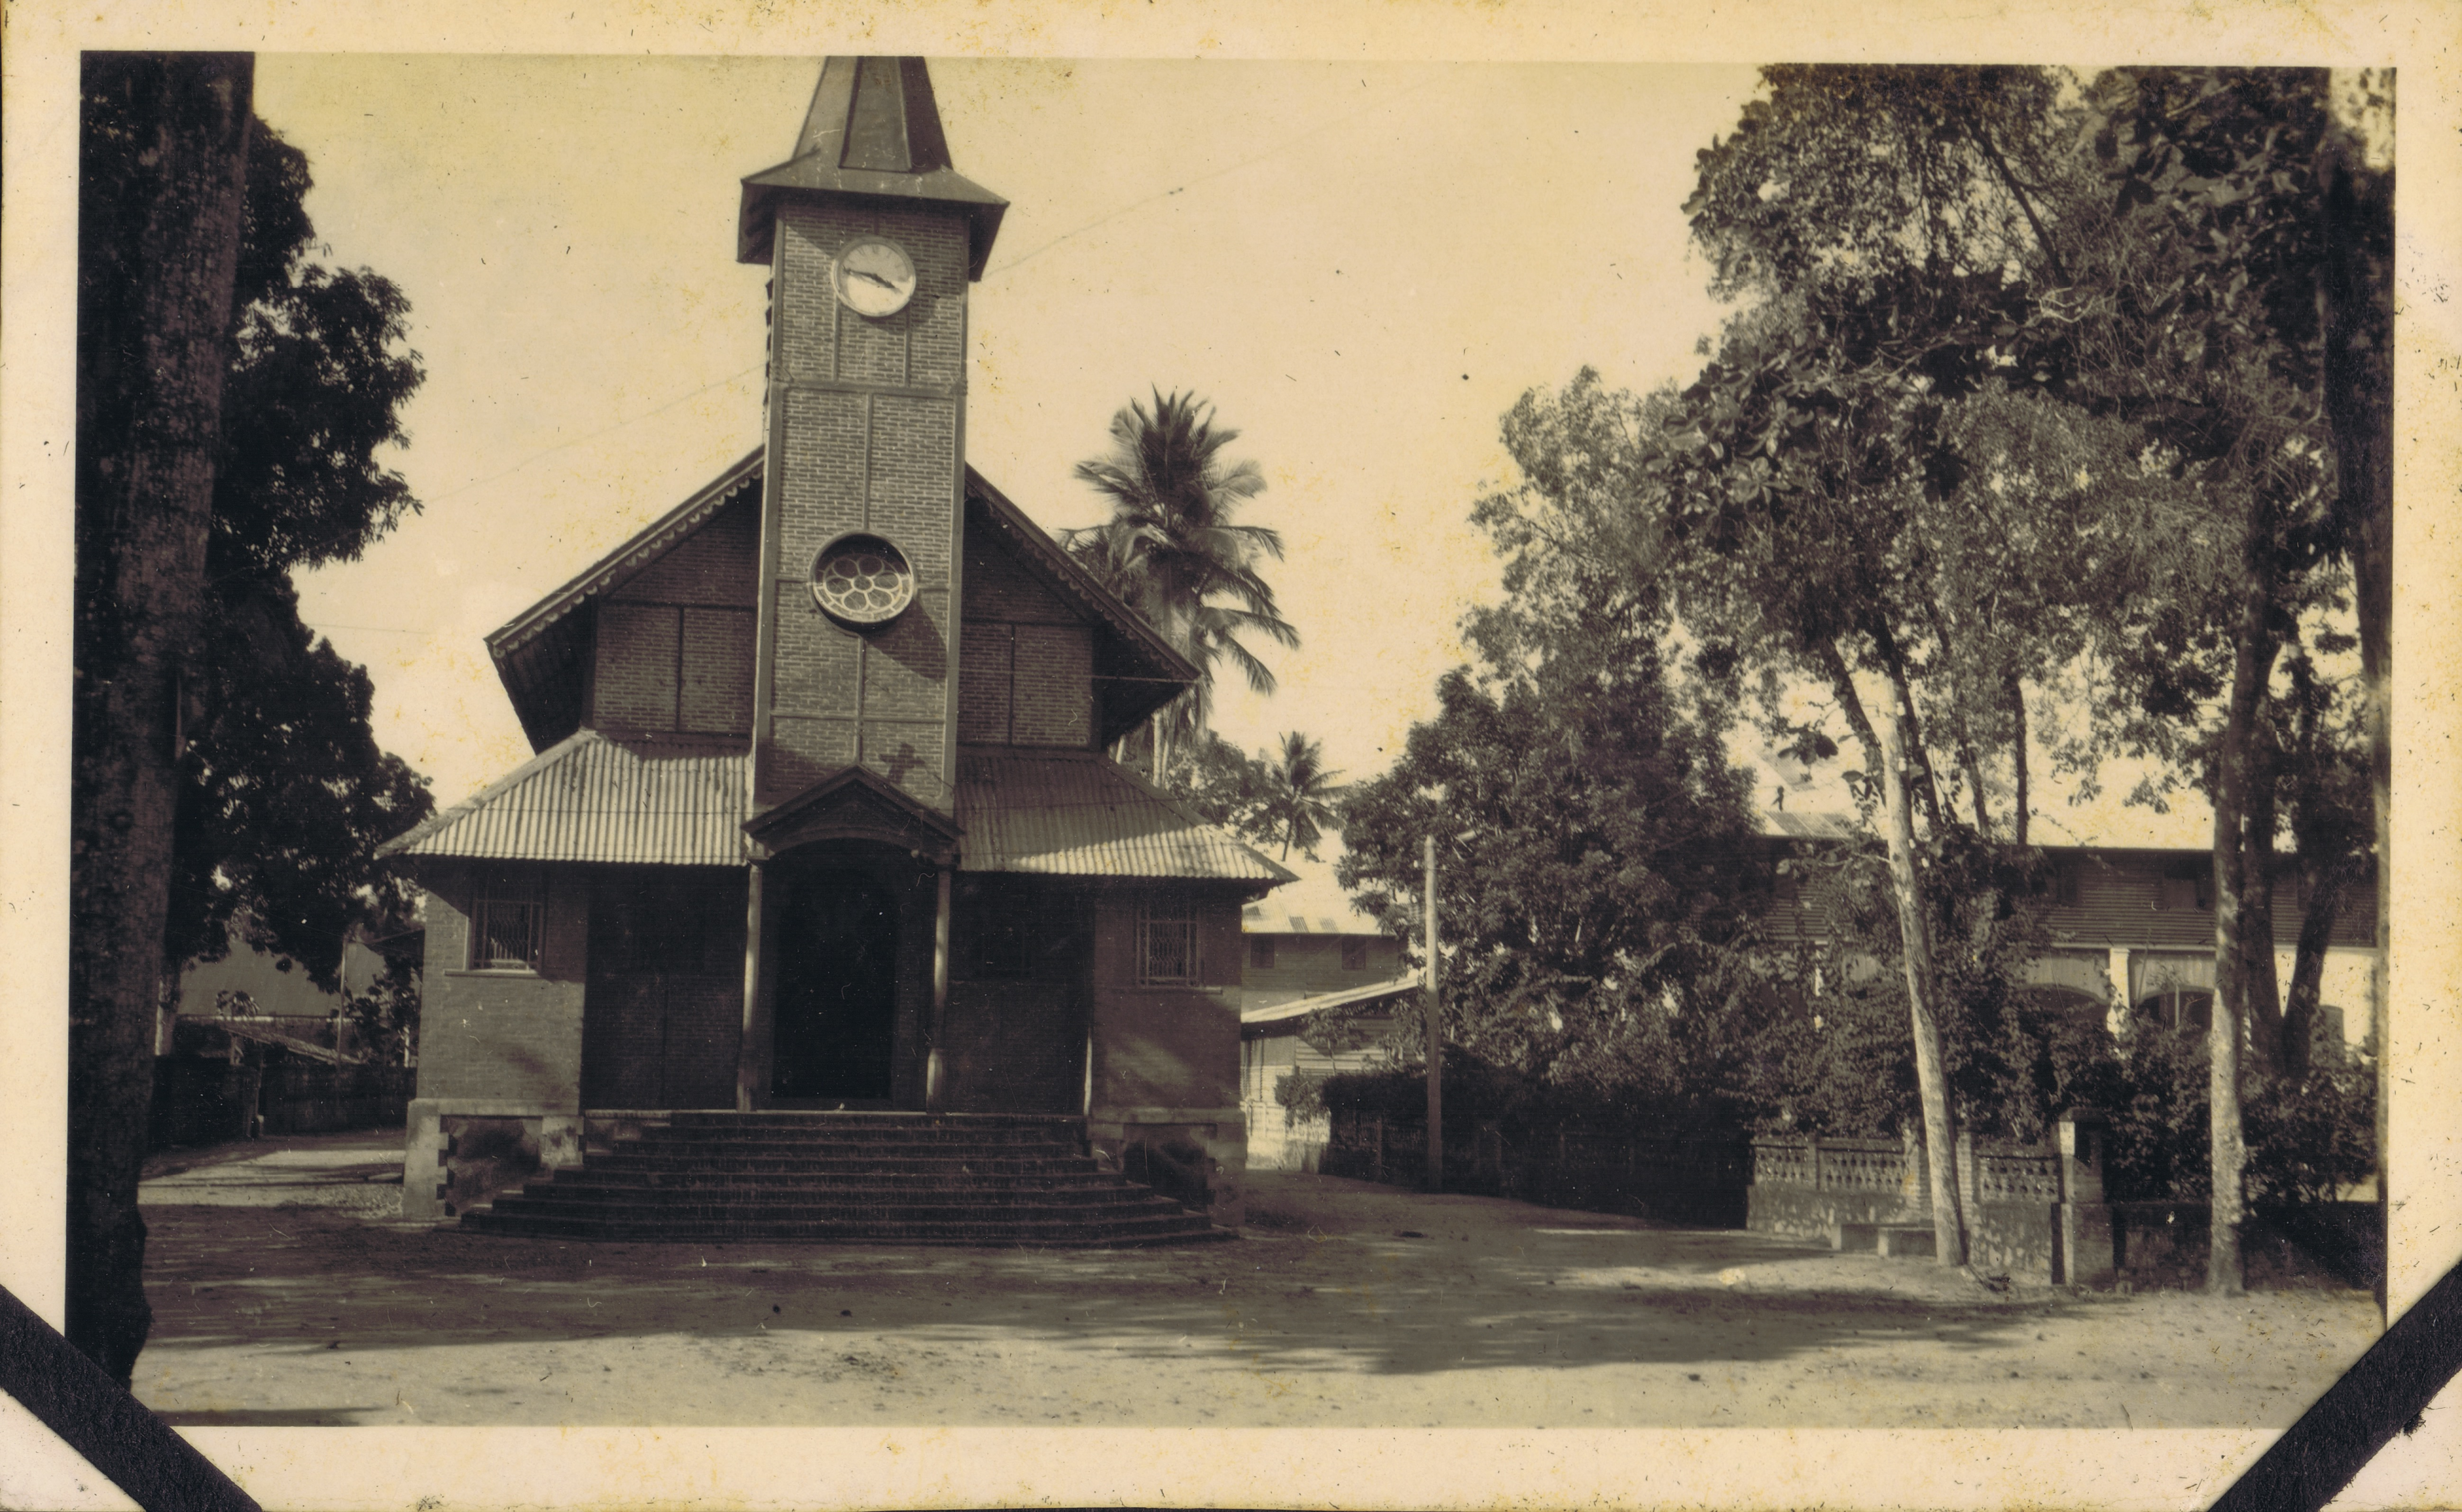 L'église de Saint-Laurent du Maroni / photo d'archives évêché de Cayenne